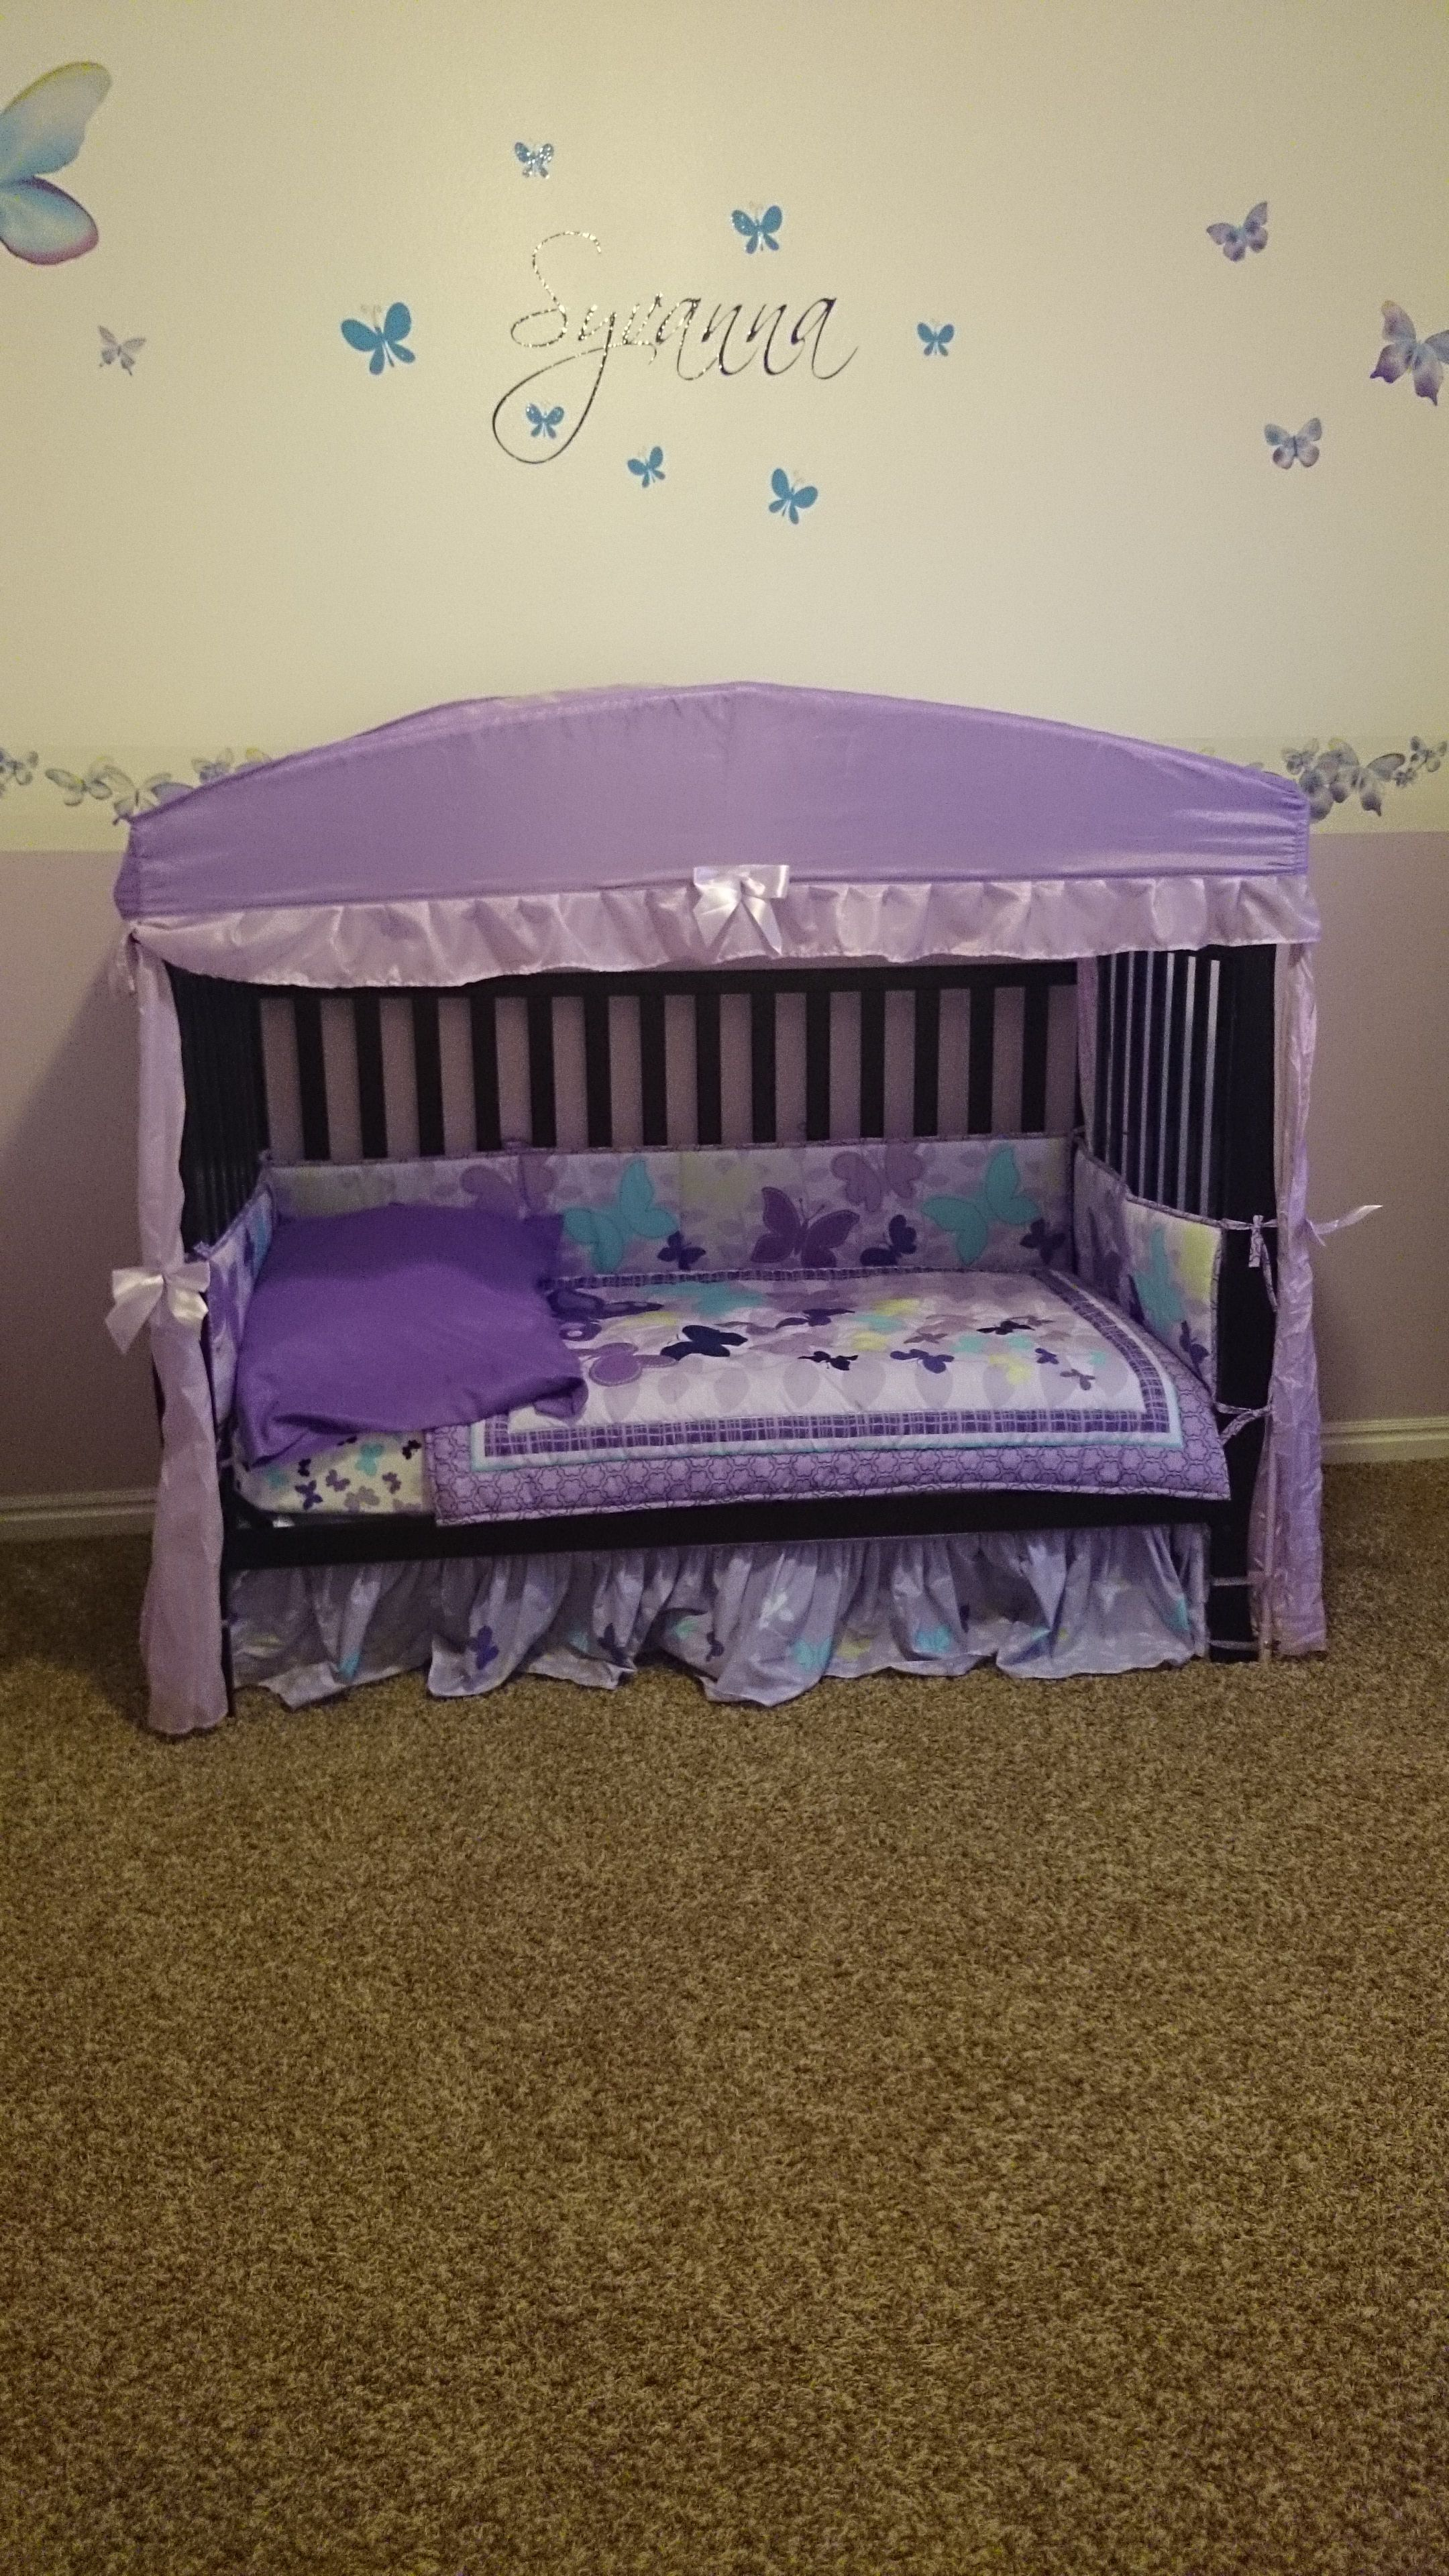 Toddler Bed Converted From Crib Found The Cute Canopy At Ross